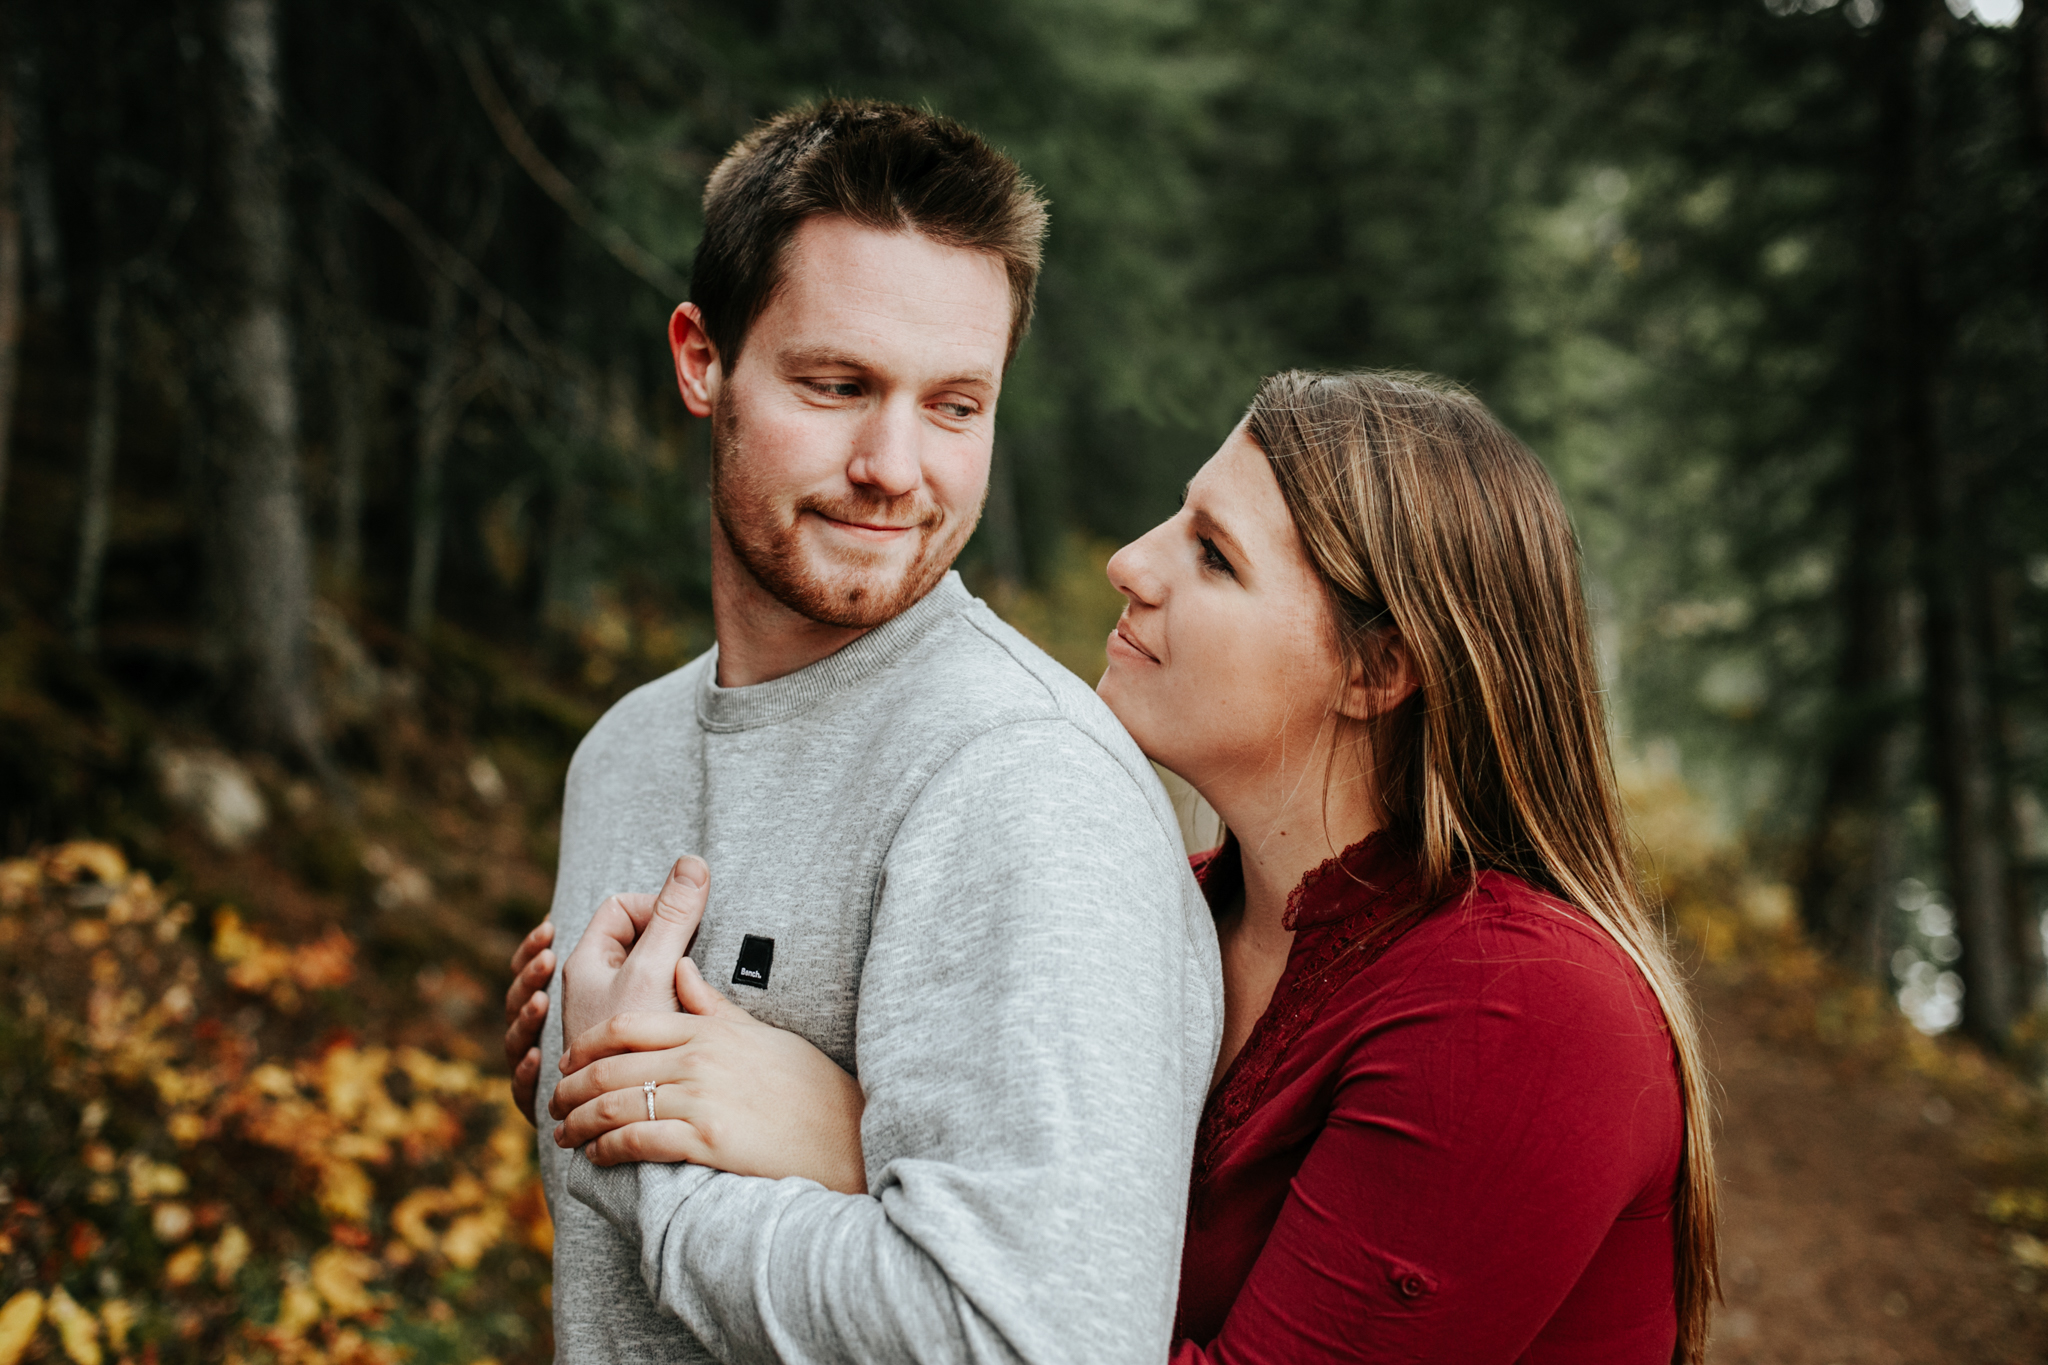 lethbridge-photographer-love-and-be-loved-photography-crowsnest-pass-engagement-andi-philip-picture-image-photo--40.jpg